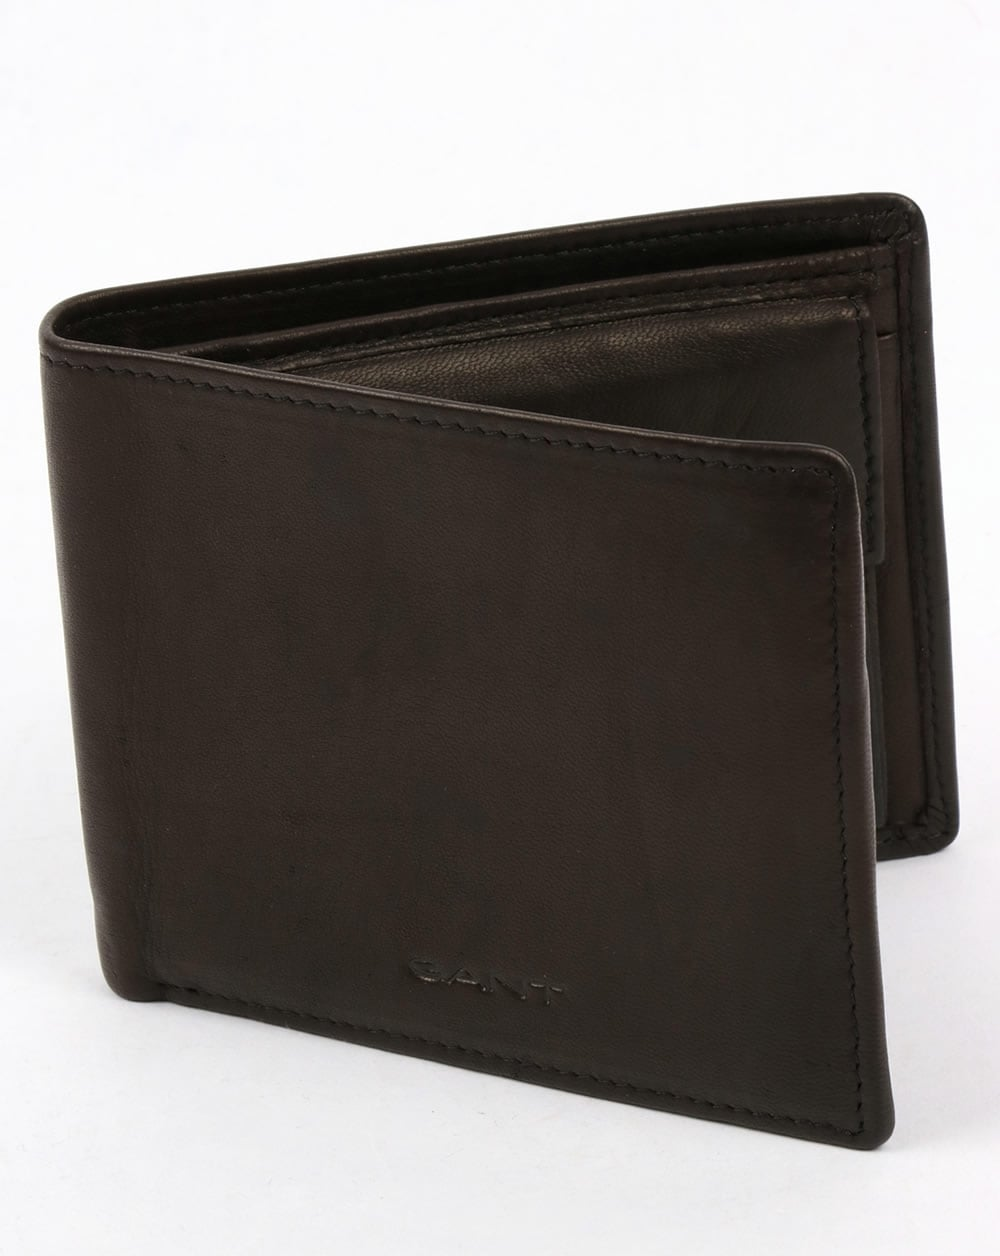 426383d9db Gant Leather Wallet Black Mud,premium,purse,card holder,mens